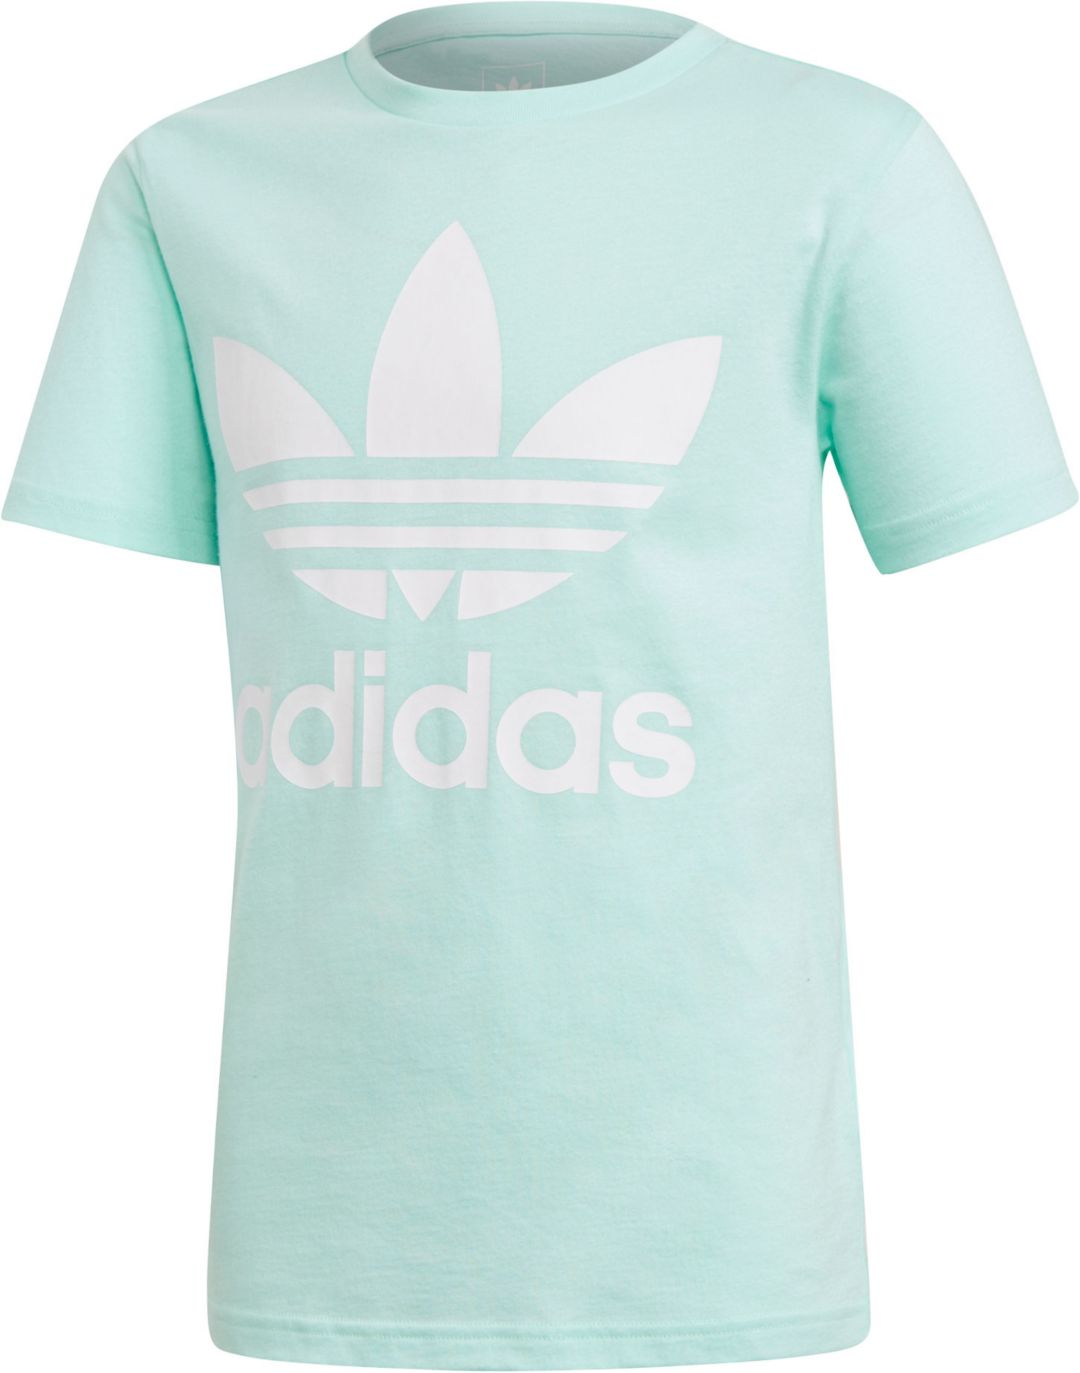 09613b6f780 adidas Originals Girls' Trefoil T-Shirt. noImageFound. Previous